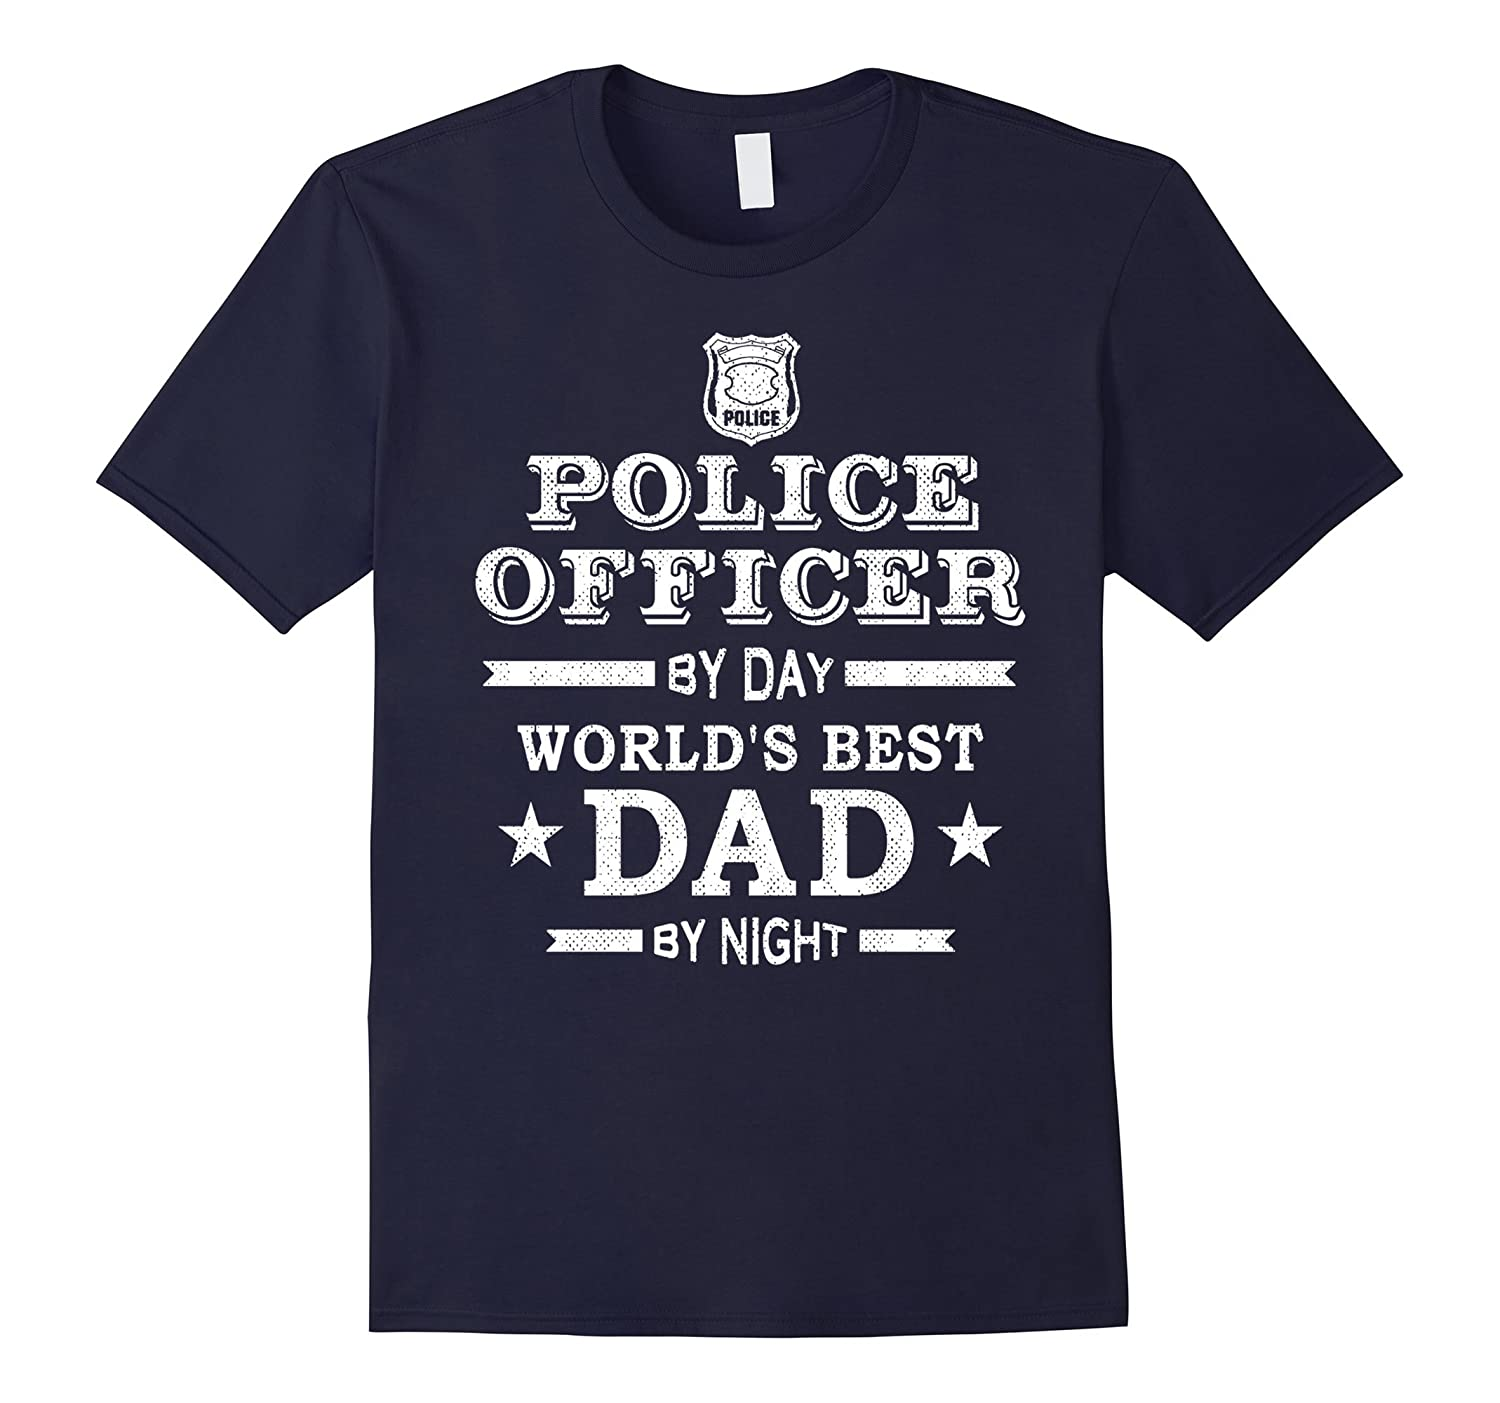 Mens Police Officer Best Dad Shirt Fathers Day Present Gift LEO-TD